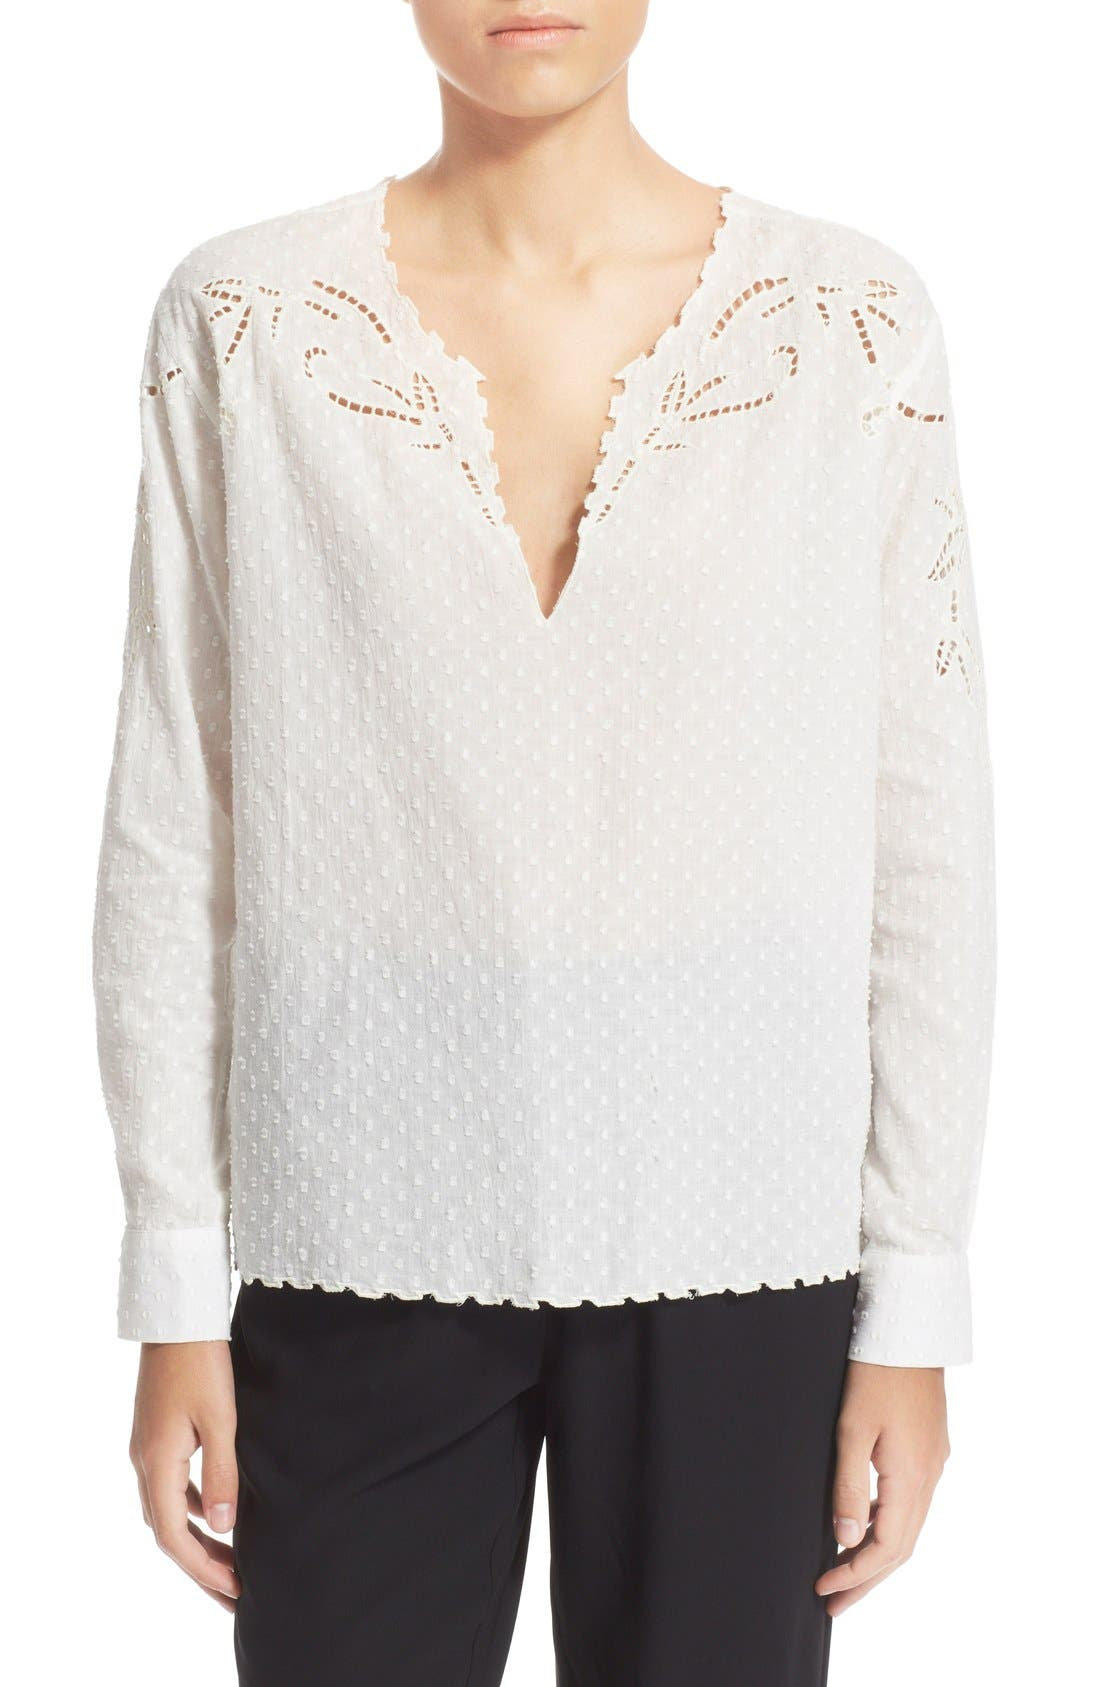 THE KOOPLES,                             Broderie Anglasie Cotton Dobby Shirt,                             Main thumbnail 1, color,                             900